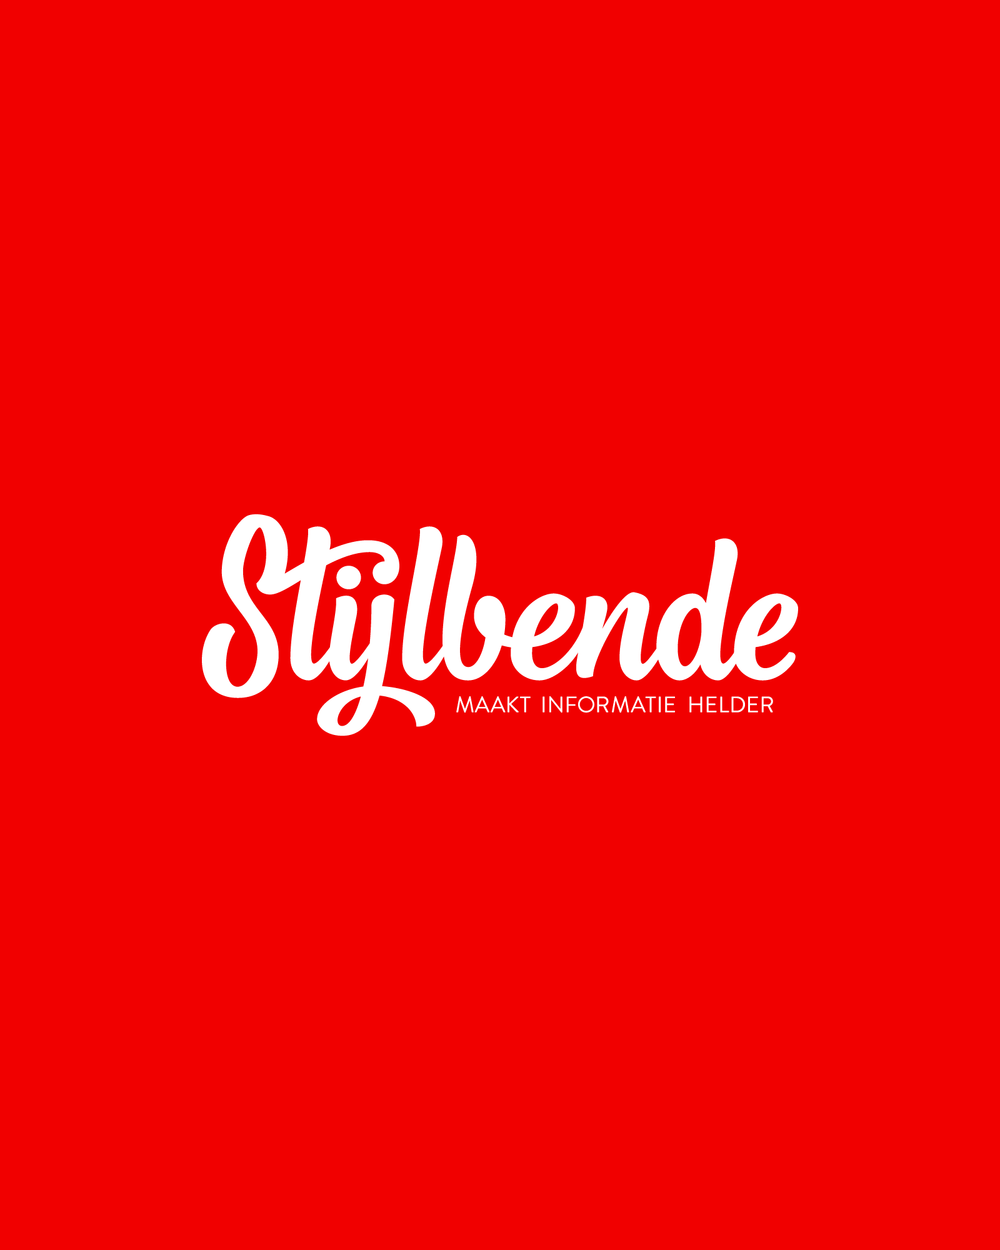 Logo Refresh Stijlbende View Project